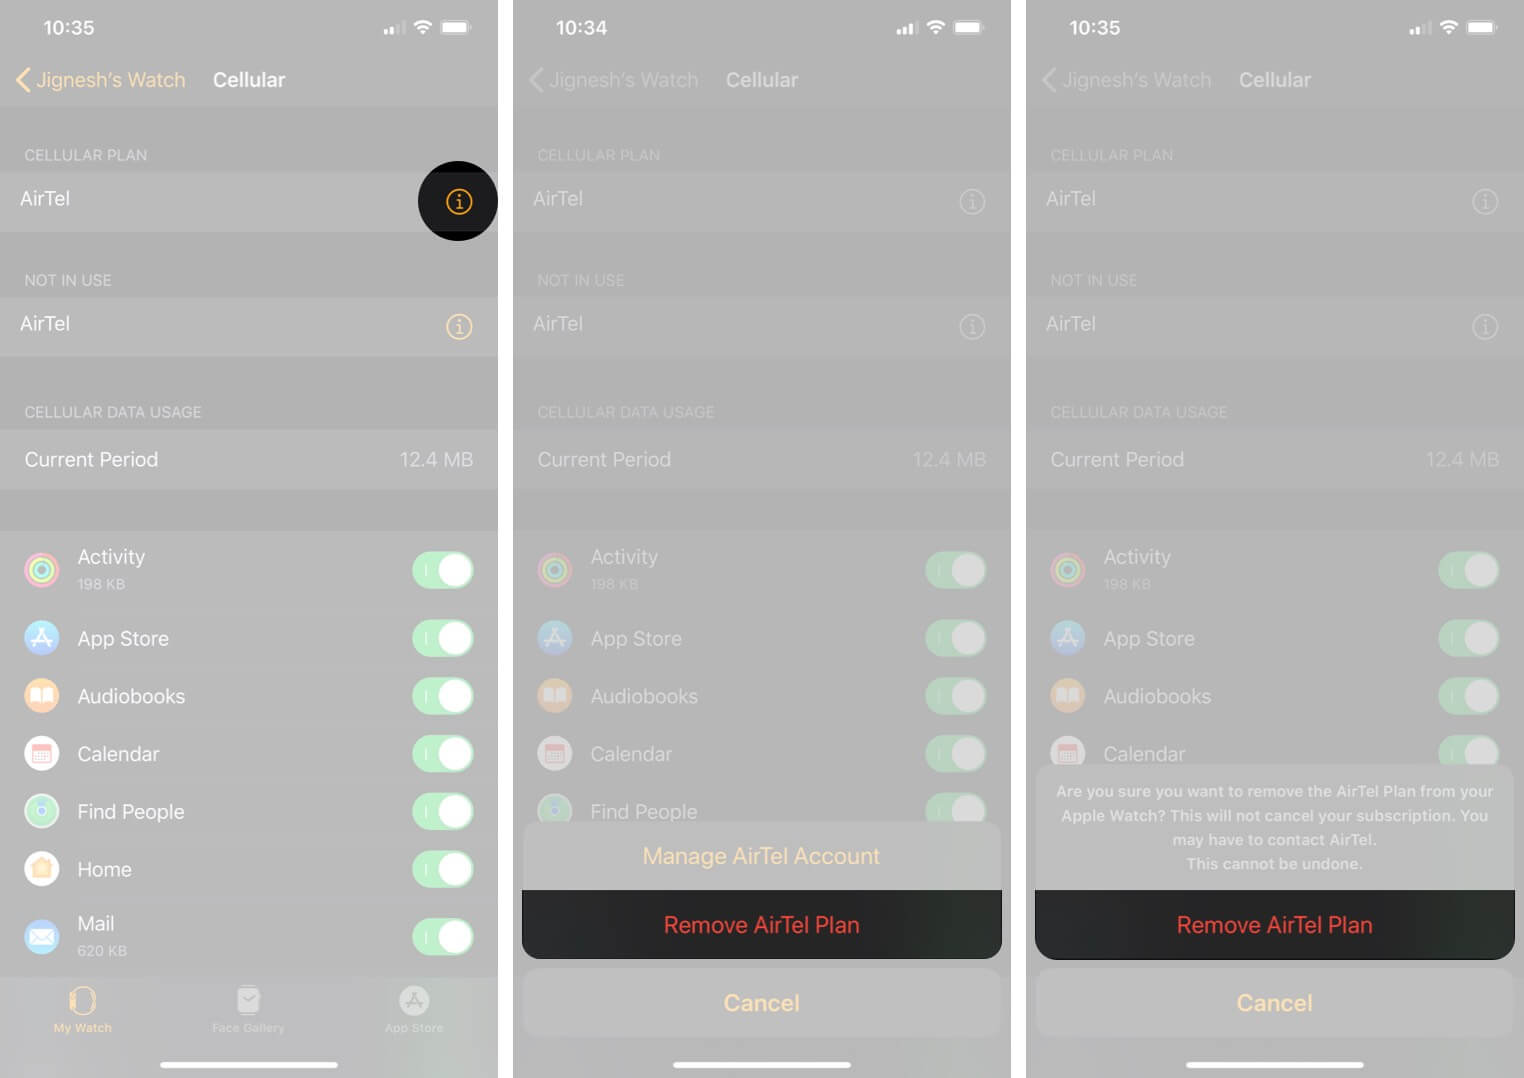 Tap on information and Then Tap on Remove Carrier Plan in Watch App on iPhone